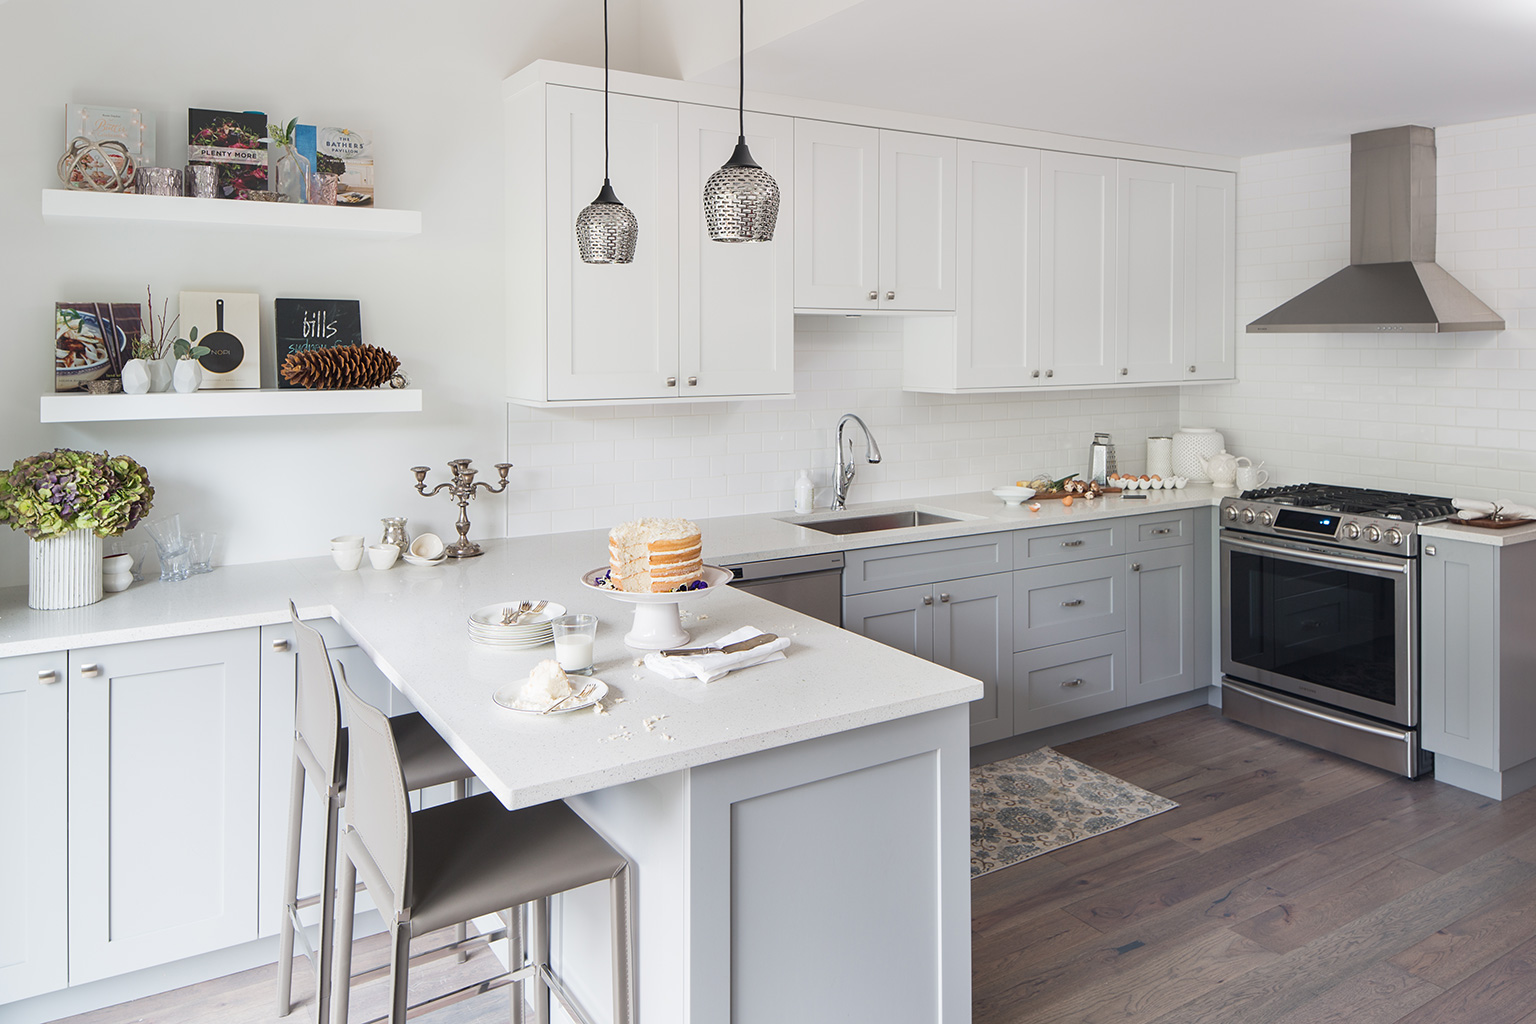 a photo of a white and grey kitchen with a layer cake on the counter